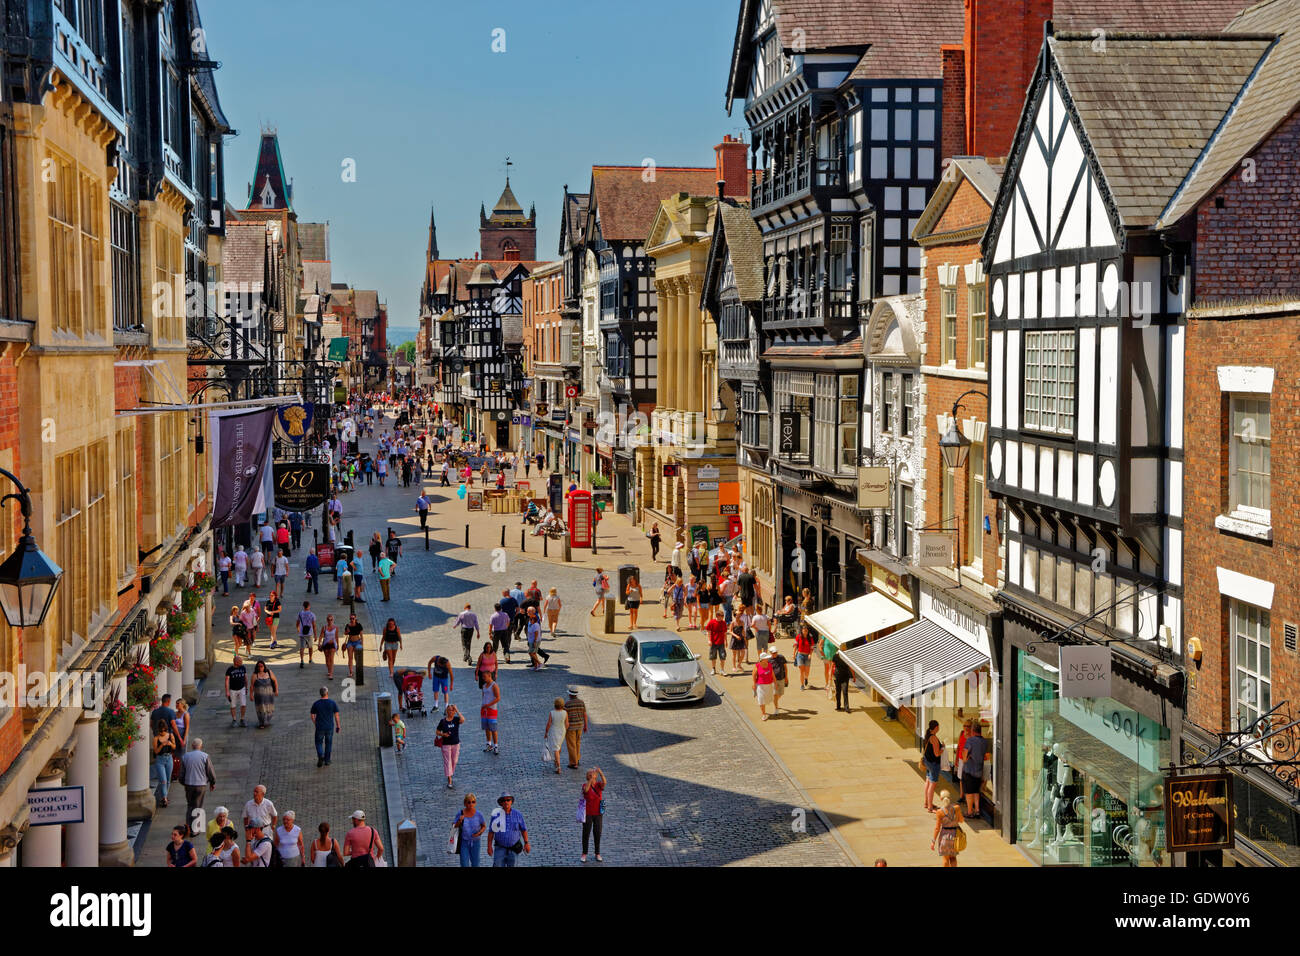 Eastgate, in the city centre of Chester, the county town of Cheshire. - Stock Image